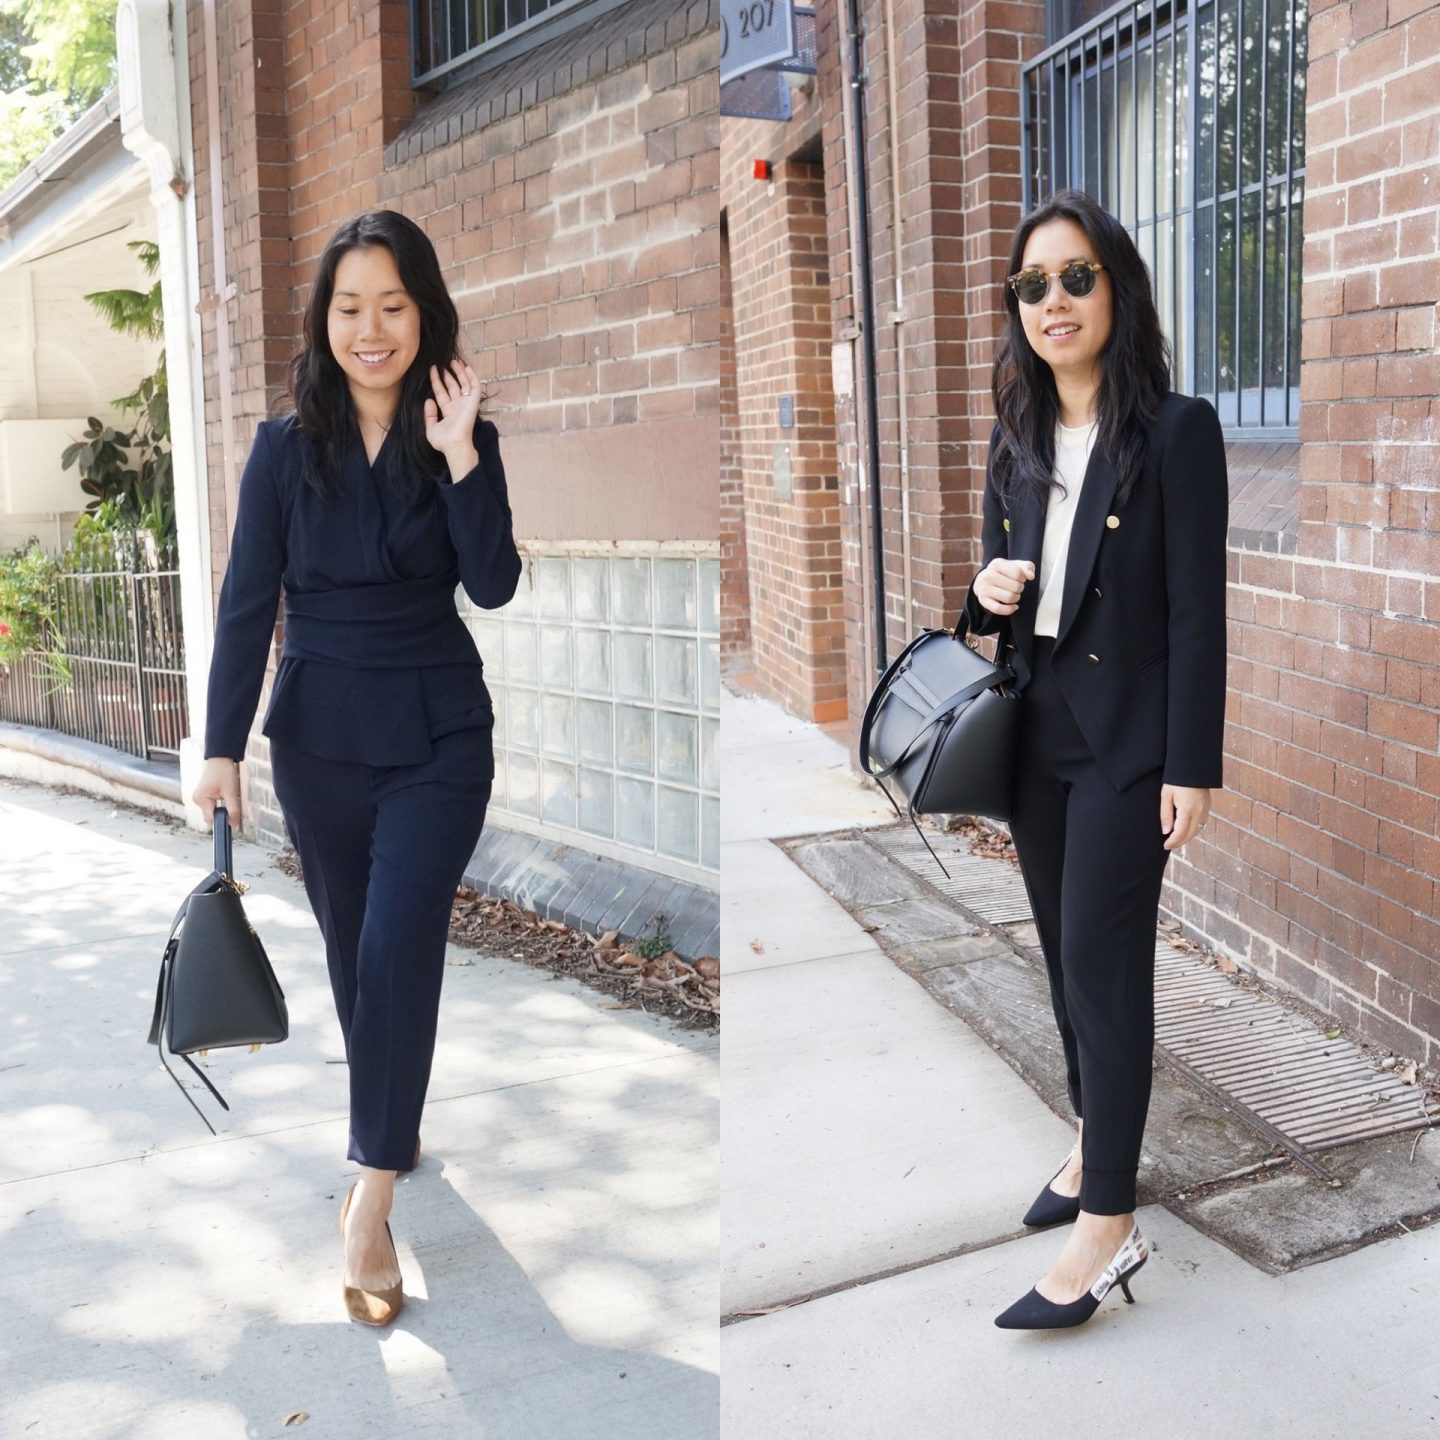 trouser and pant suits in blog post about power dressing outfits